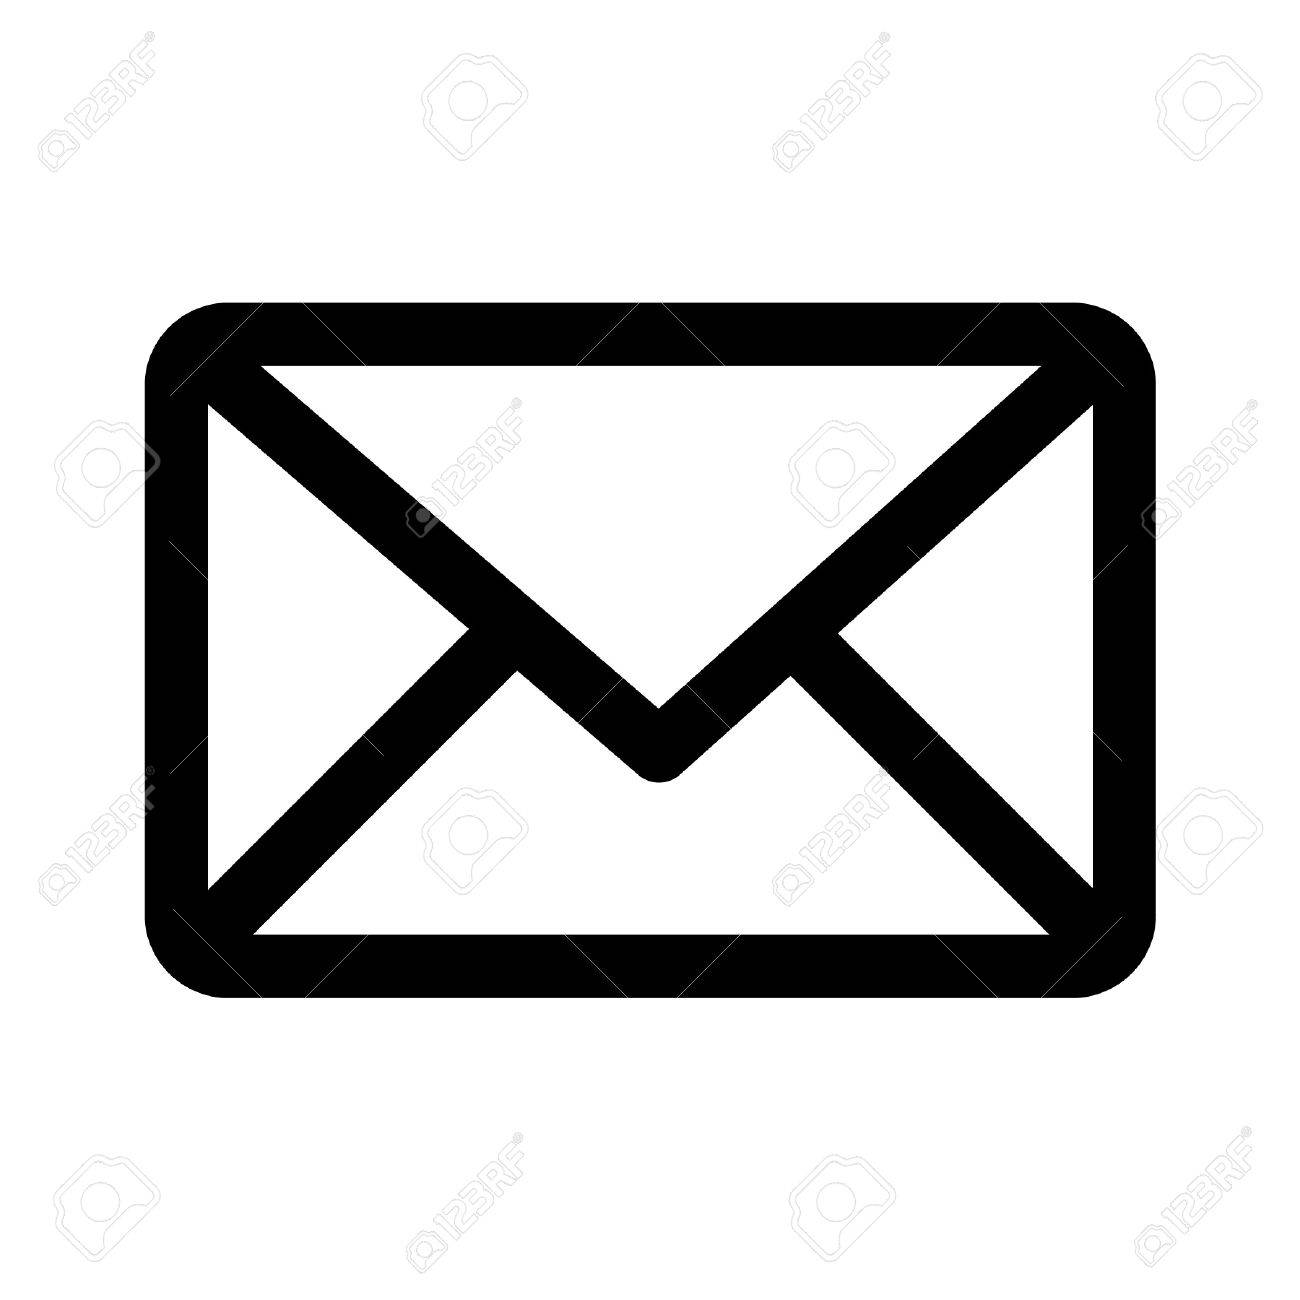 Email message line art icon for apps and websites.